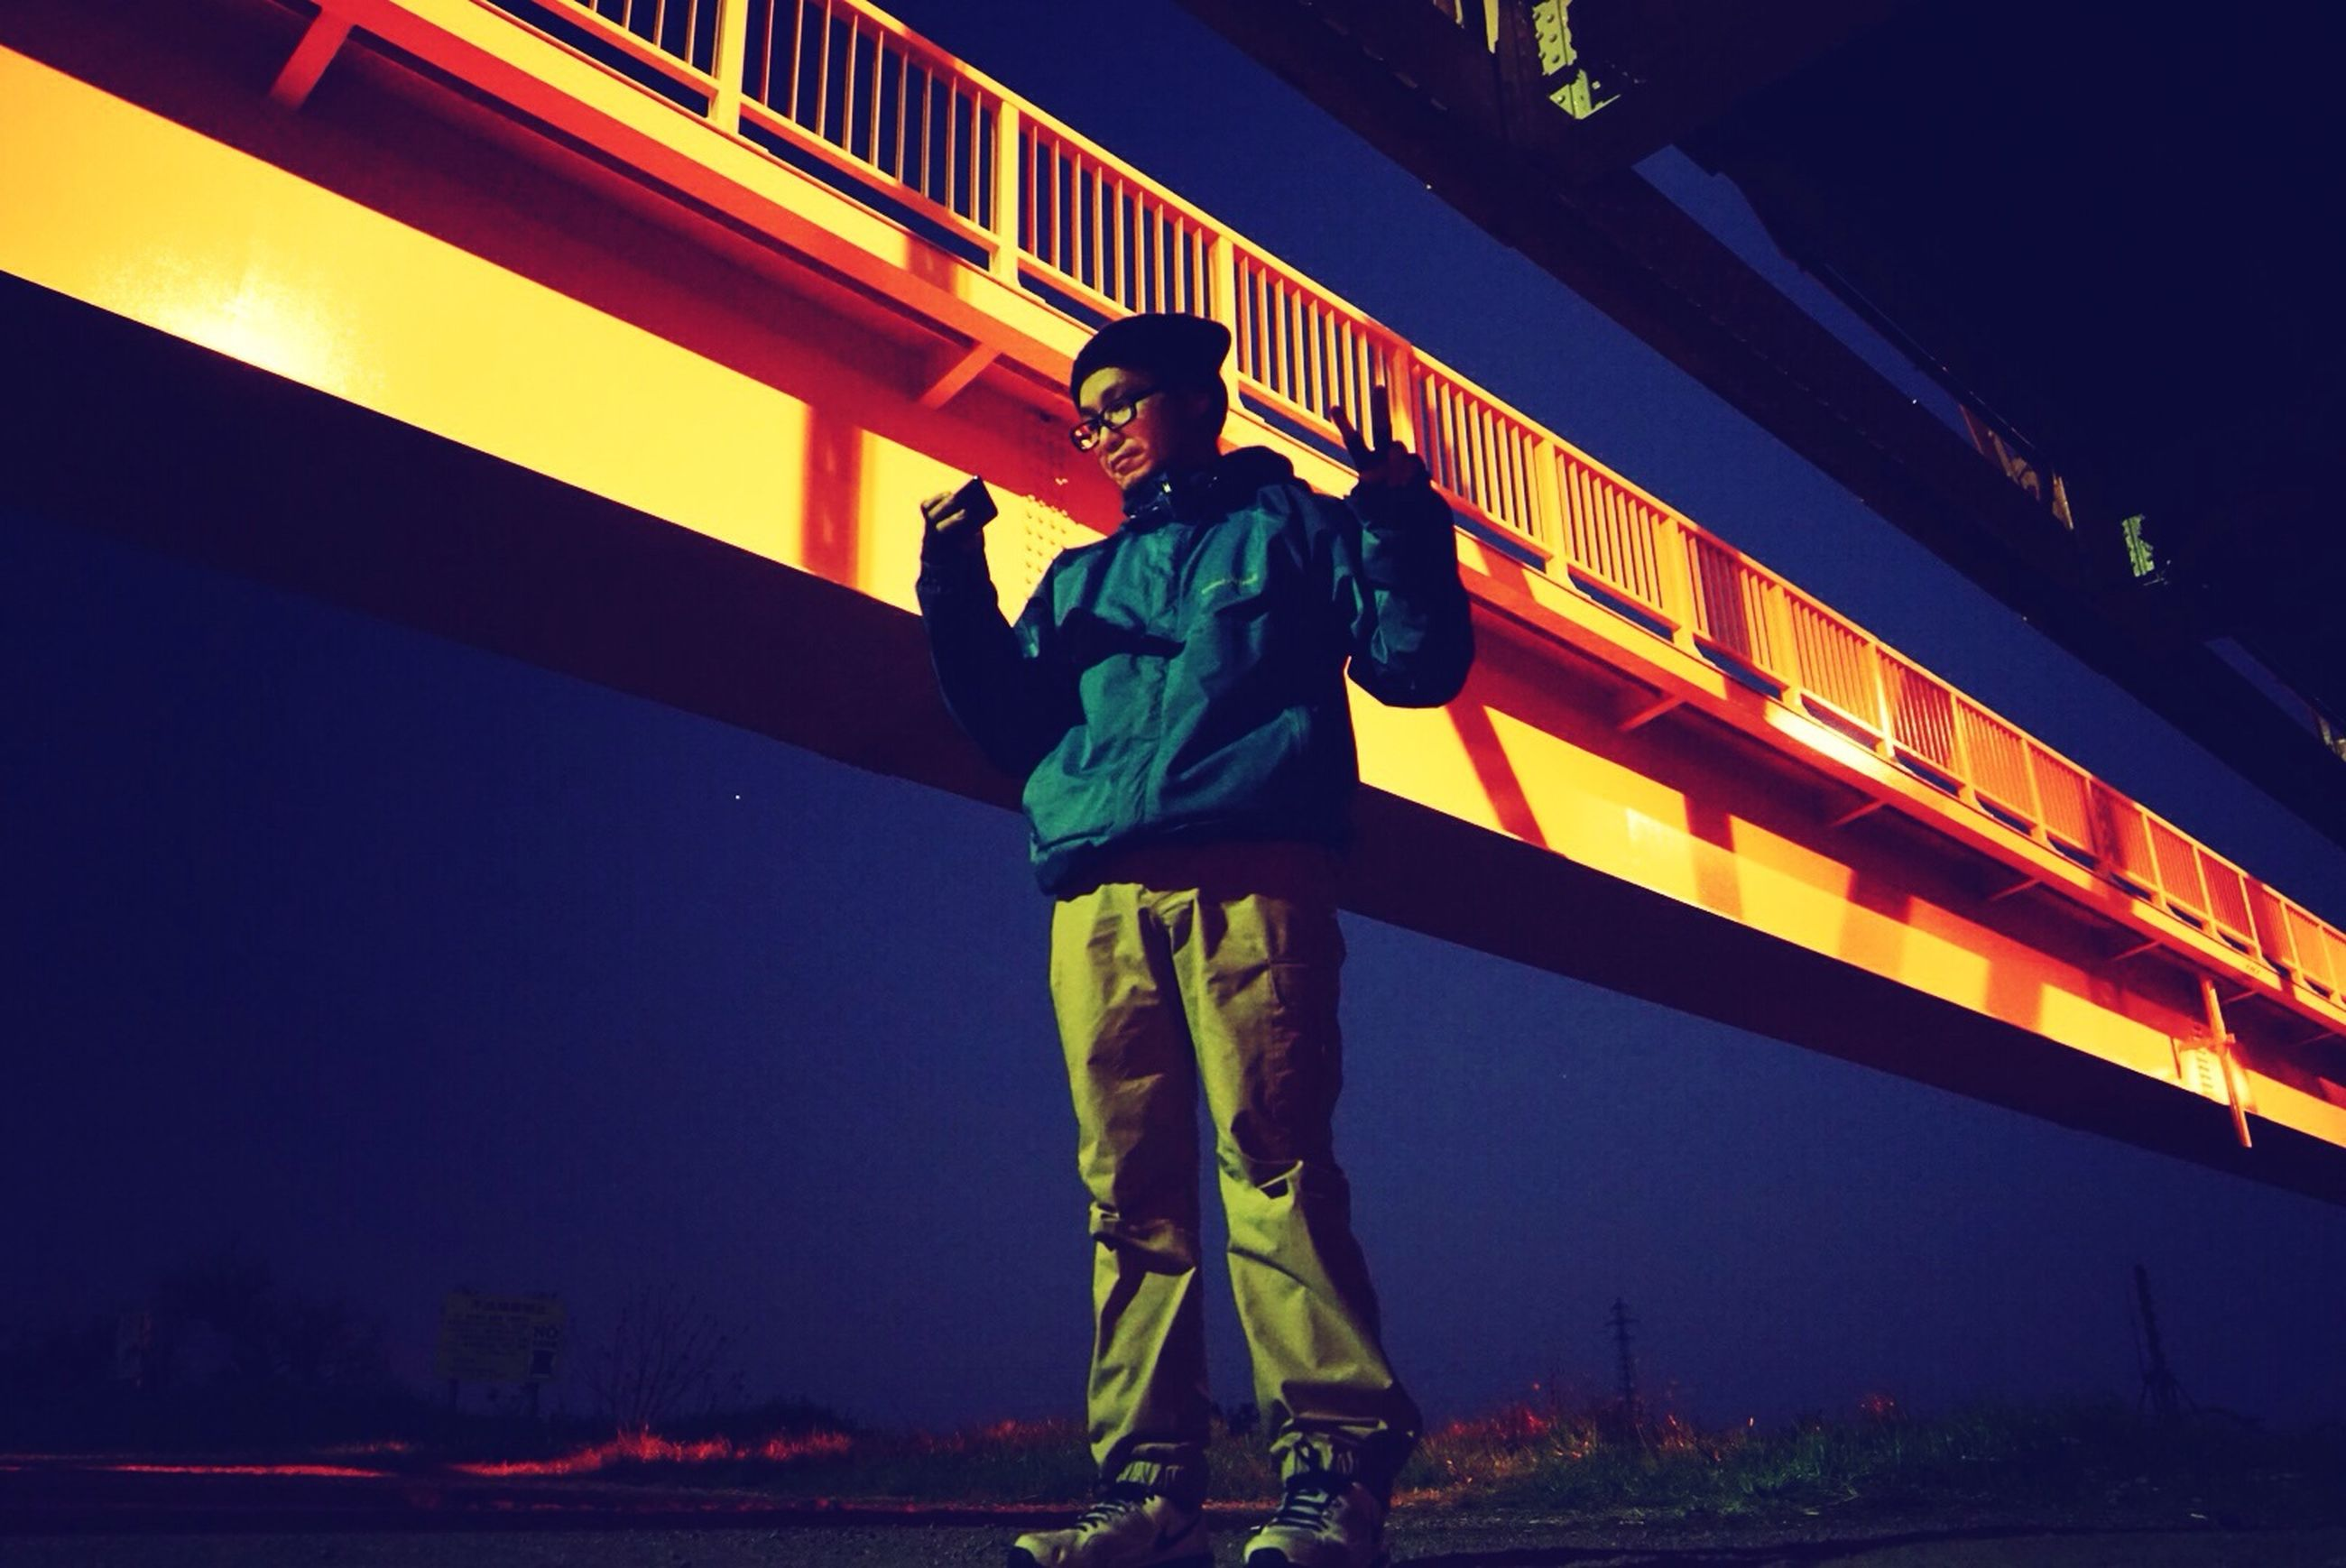 lifestyles, men, leisure activity, standing, full length, low angle view, built structure, casual clothing, rear view, architecture, night, railing, bridge - man made structure, illuminated, person, yellow, transportation, travel